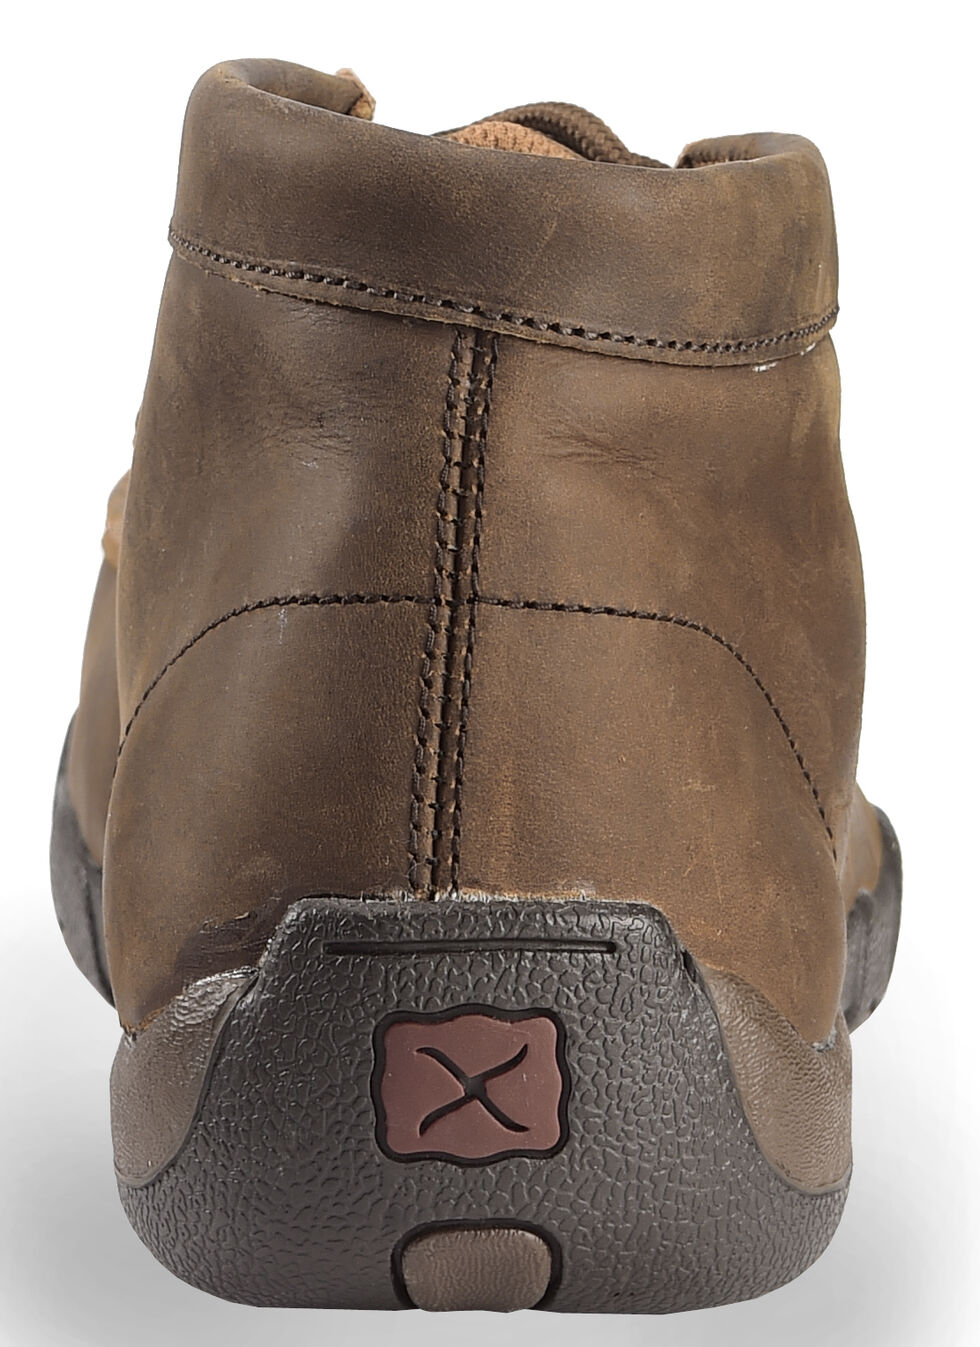 Twisted X Driving Lace-Up Moccasin Shoes - Steel Toe, Brown, hi-res